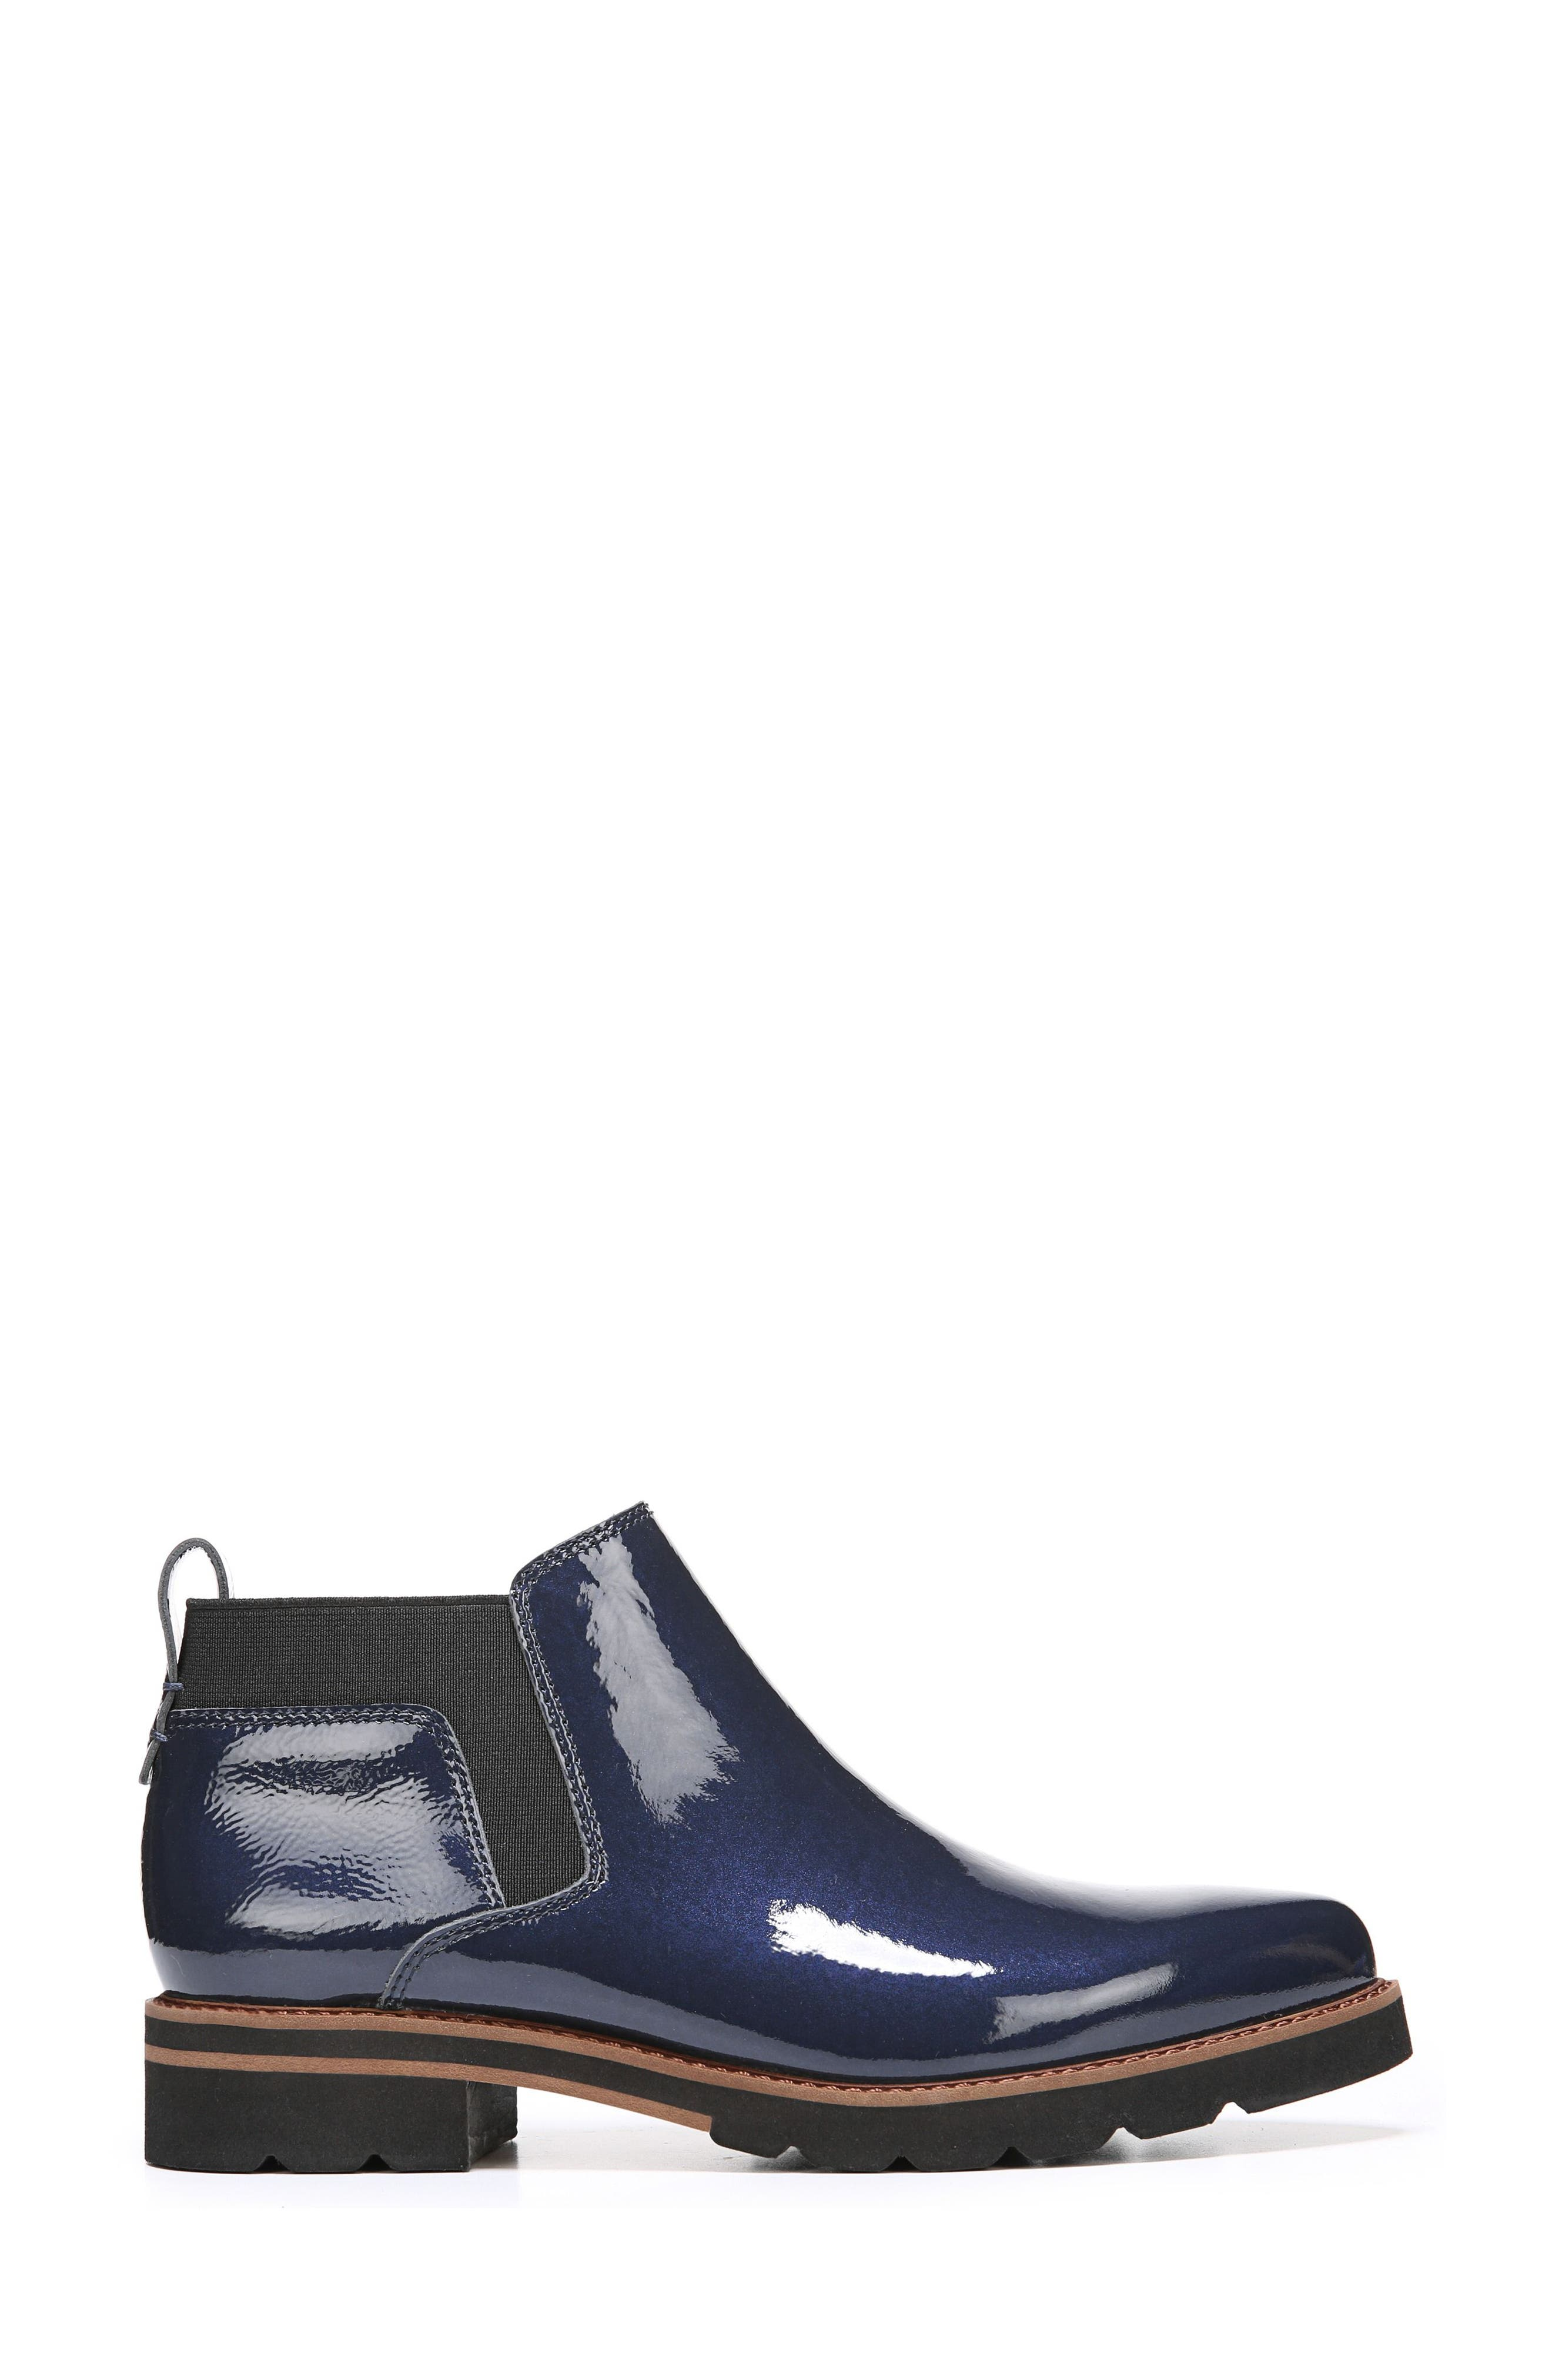 Bringham Bootie,                             Alternate thumbnail 11, color,